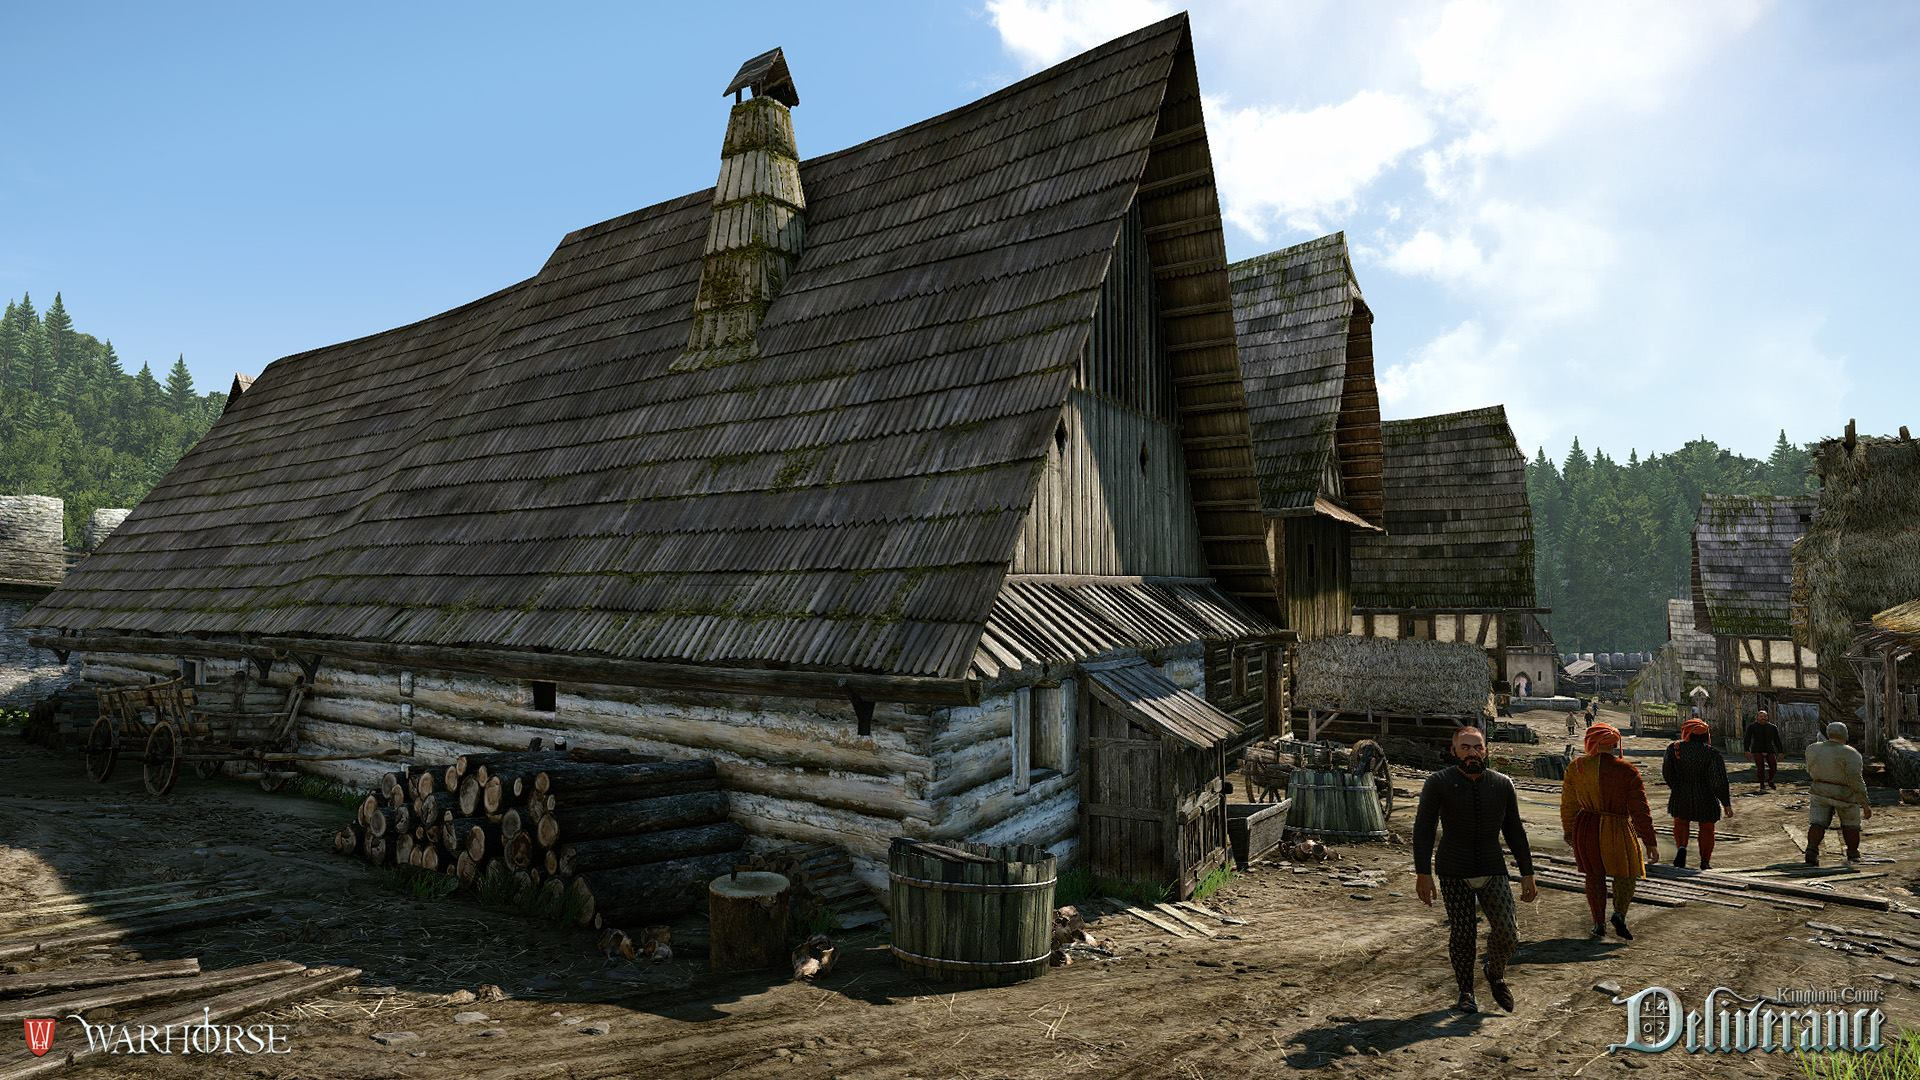 New Impressive Kingdom Come Deliverance Screenshots Demonstrates CryEngine 3 Power